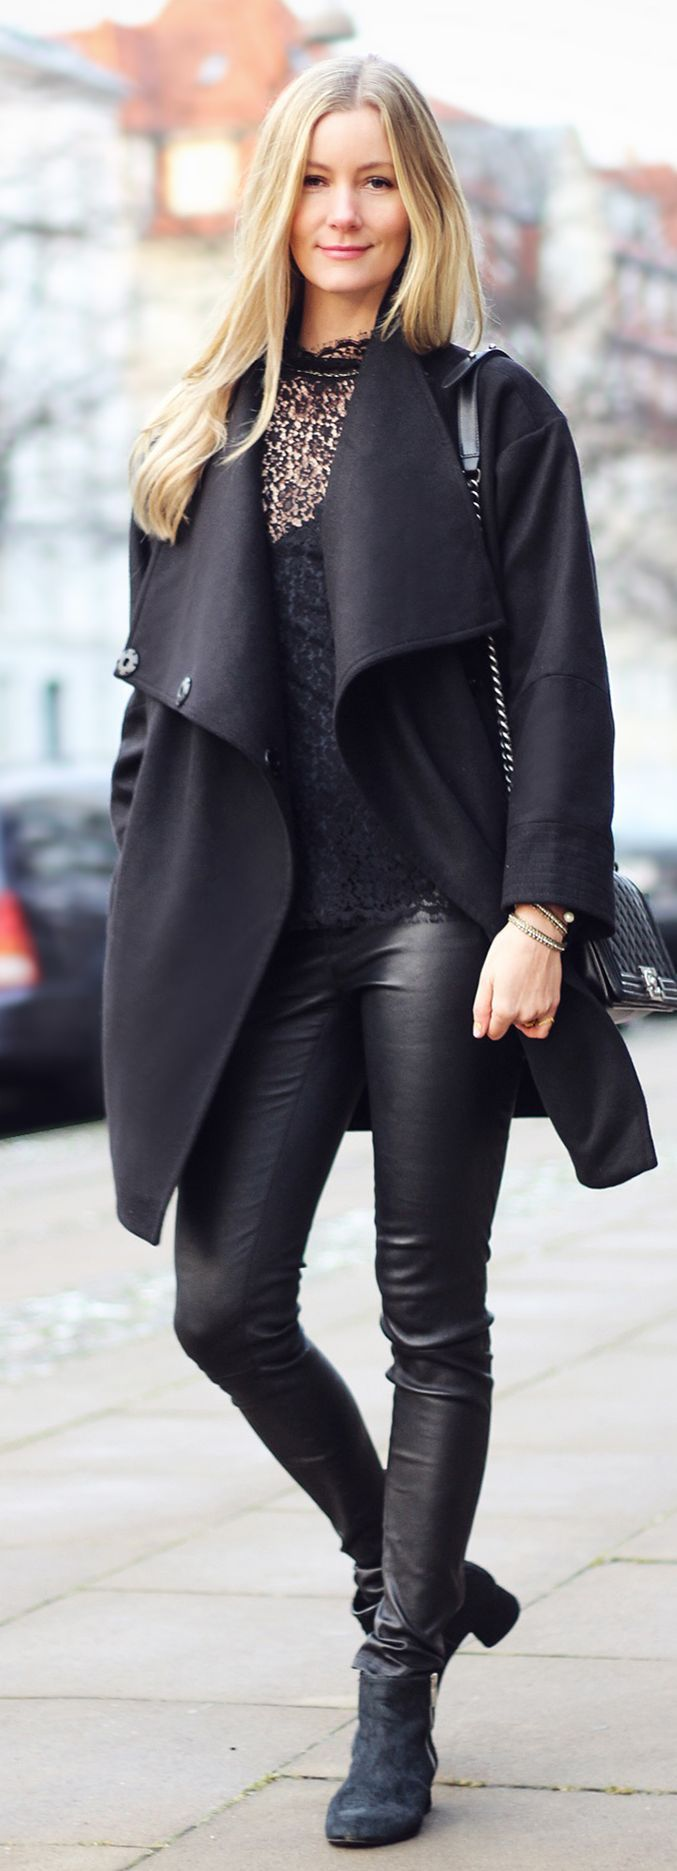 Black Lined Lace Blouse--minus the boots.  I would wear a different boot or heel